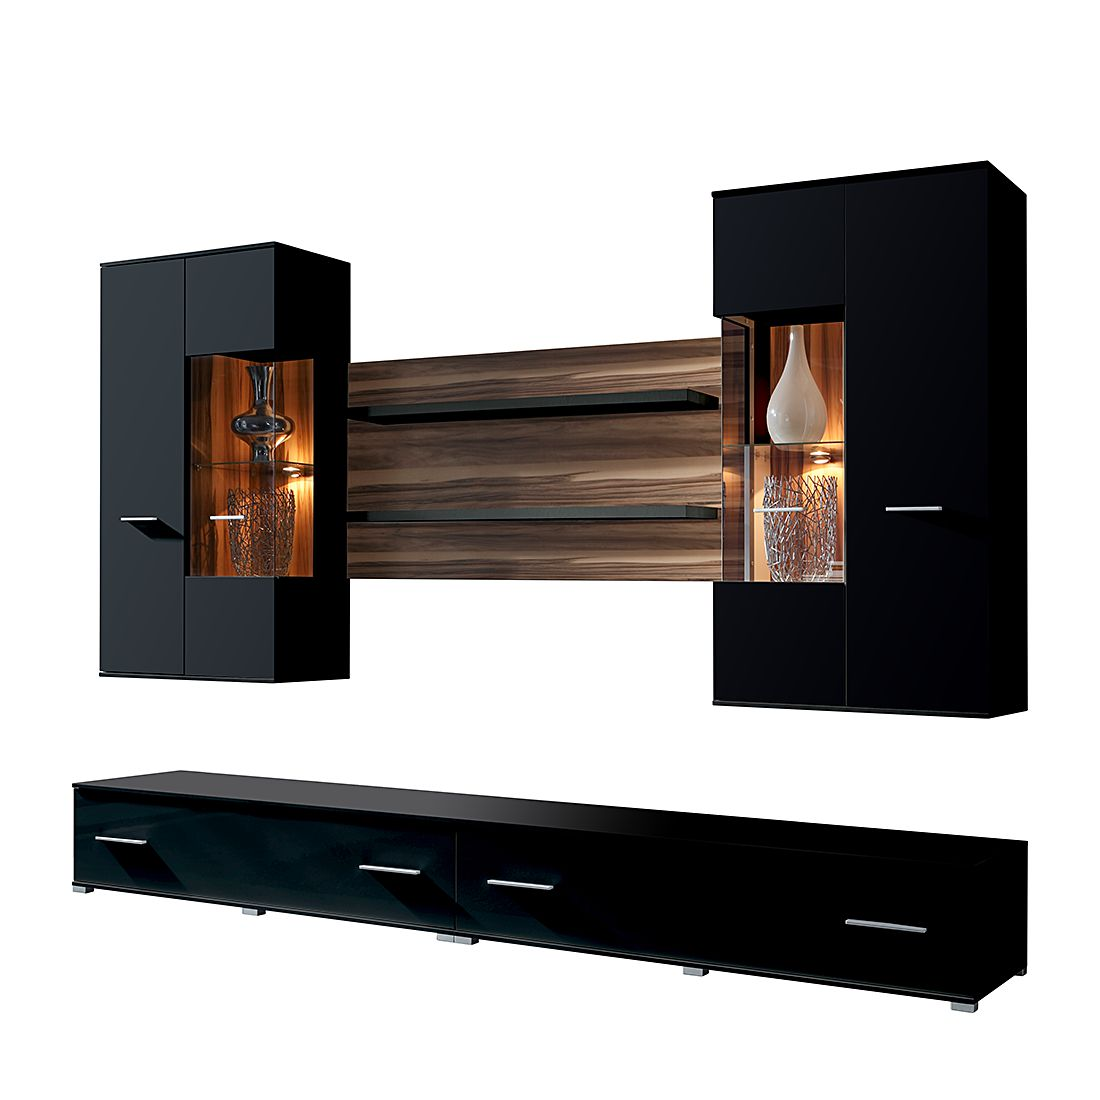 wohnw nde archive seite 24 von 39. Black Bedroom Furniture Sets. Home Design Ideas